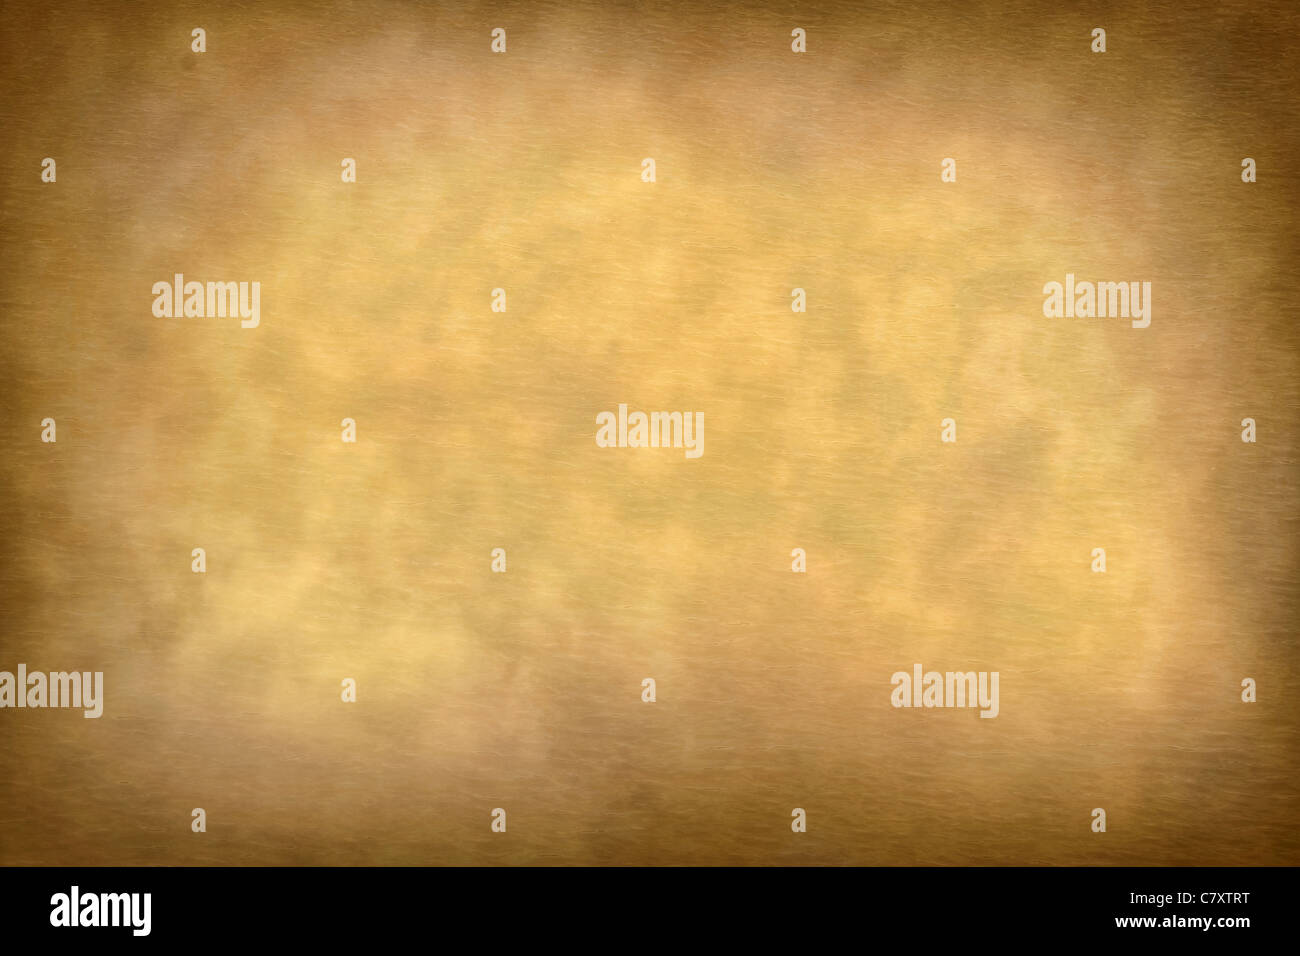 Old Parchment Rustic Paper Texture Background With Vignette